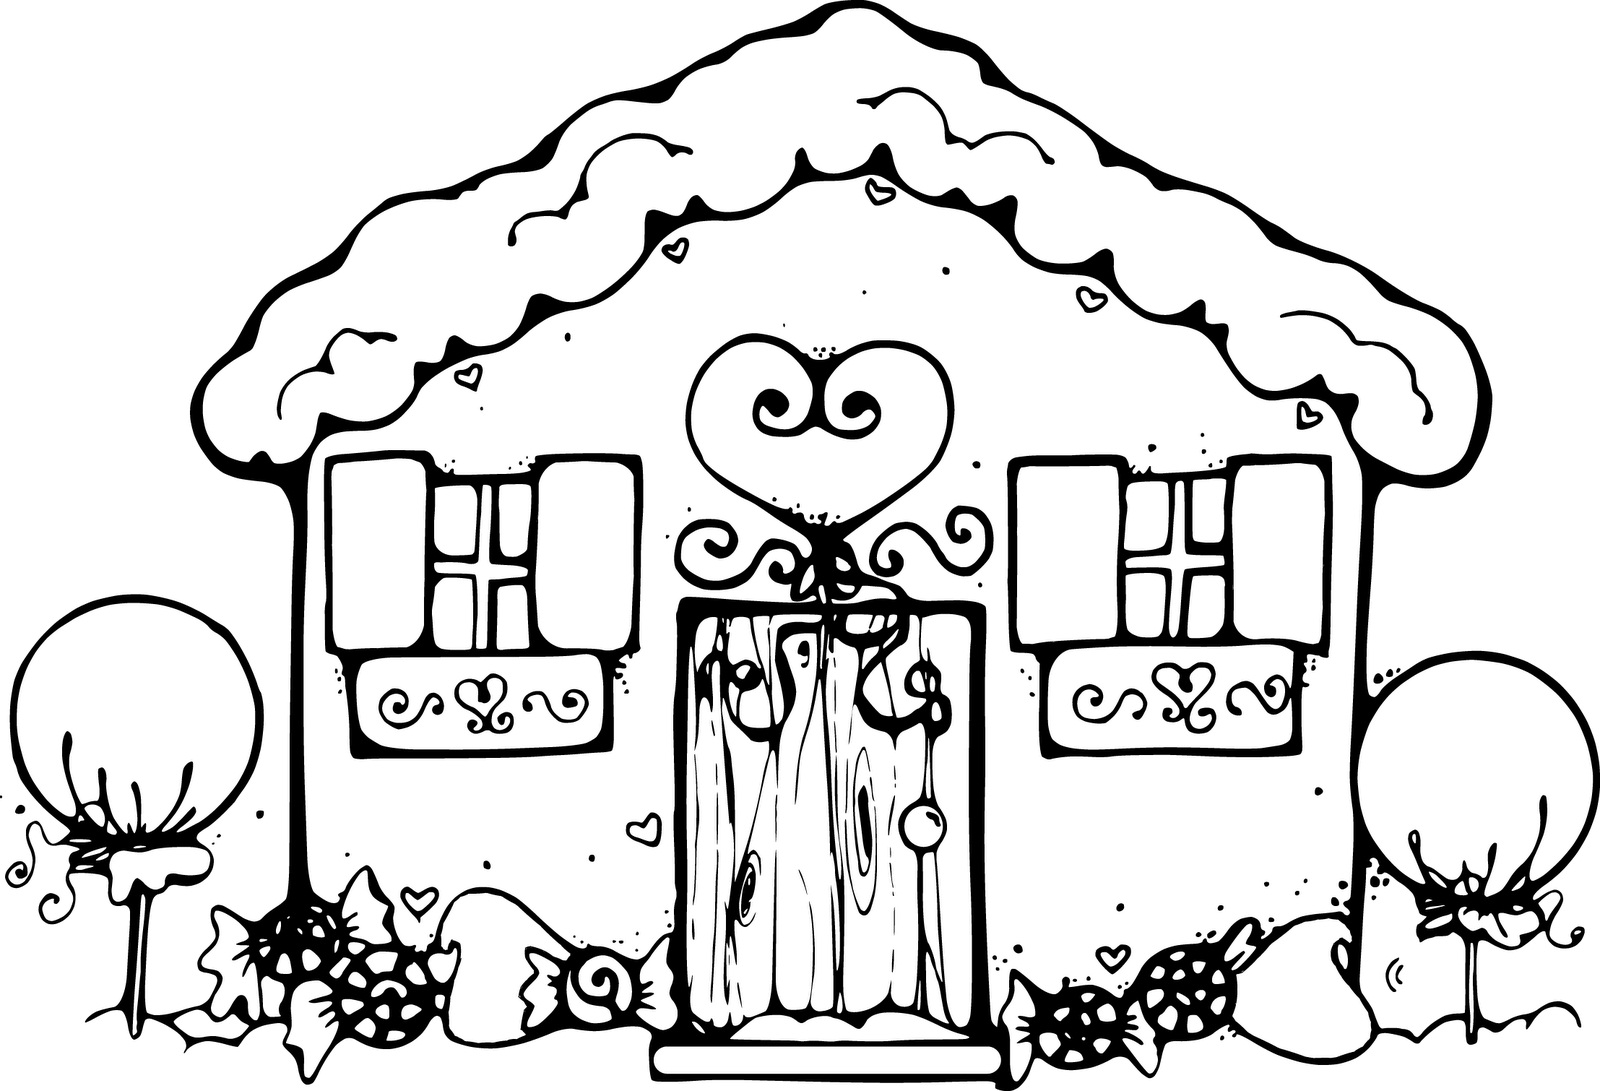 Free printable house coloring pages for kids for Fun coloring pages for kids